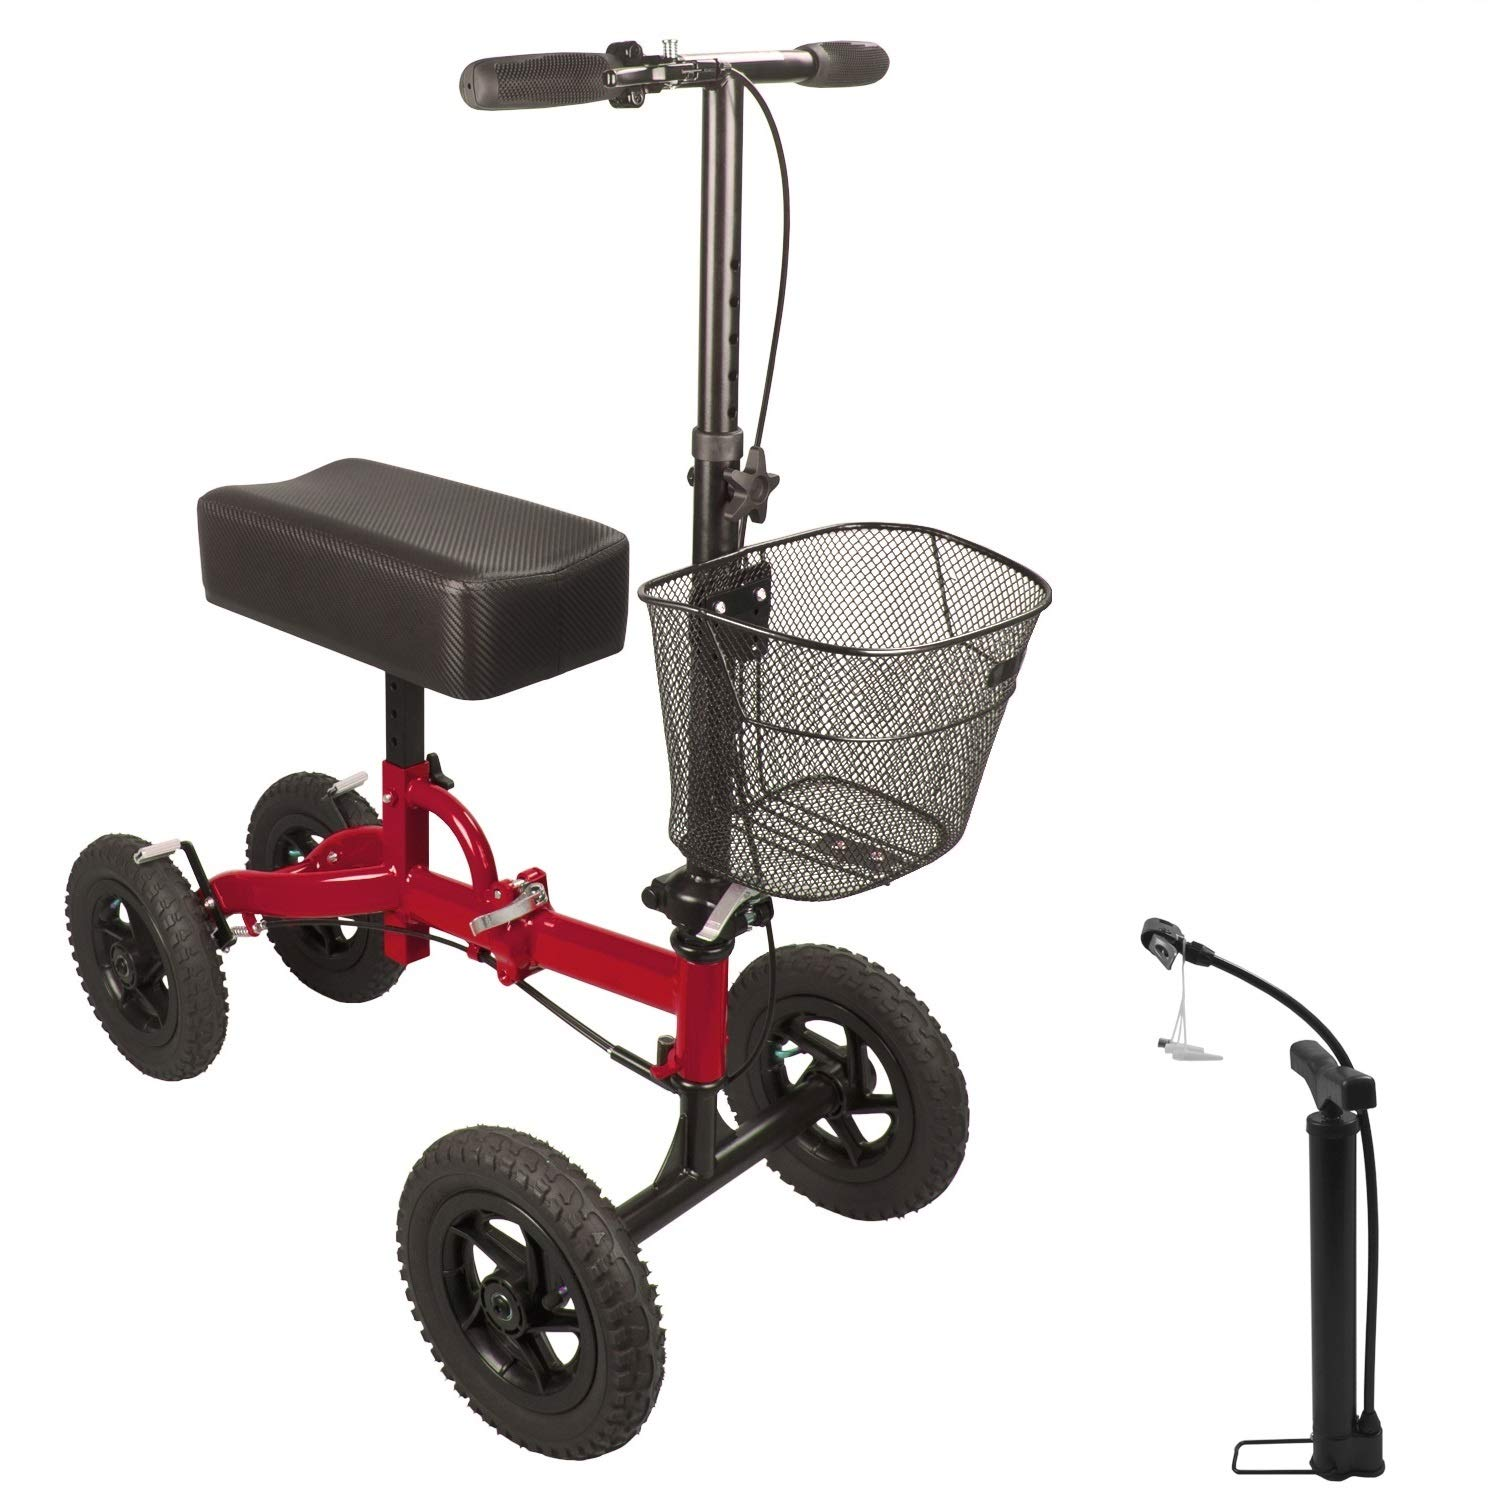 H&A All Terrain Rolling Knee Walker for Leg and Foot Injuries Crutch Steerable Alternative Medical Knee Scooter with Free Tire Pump (Red)